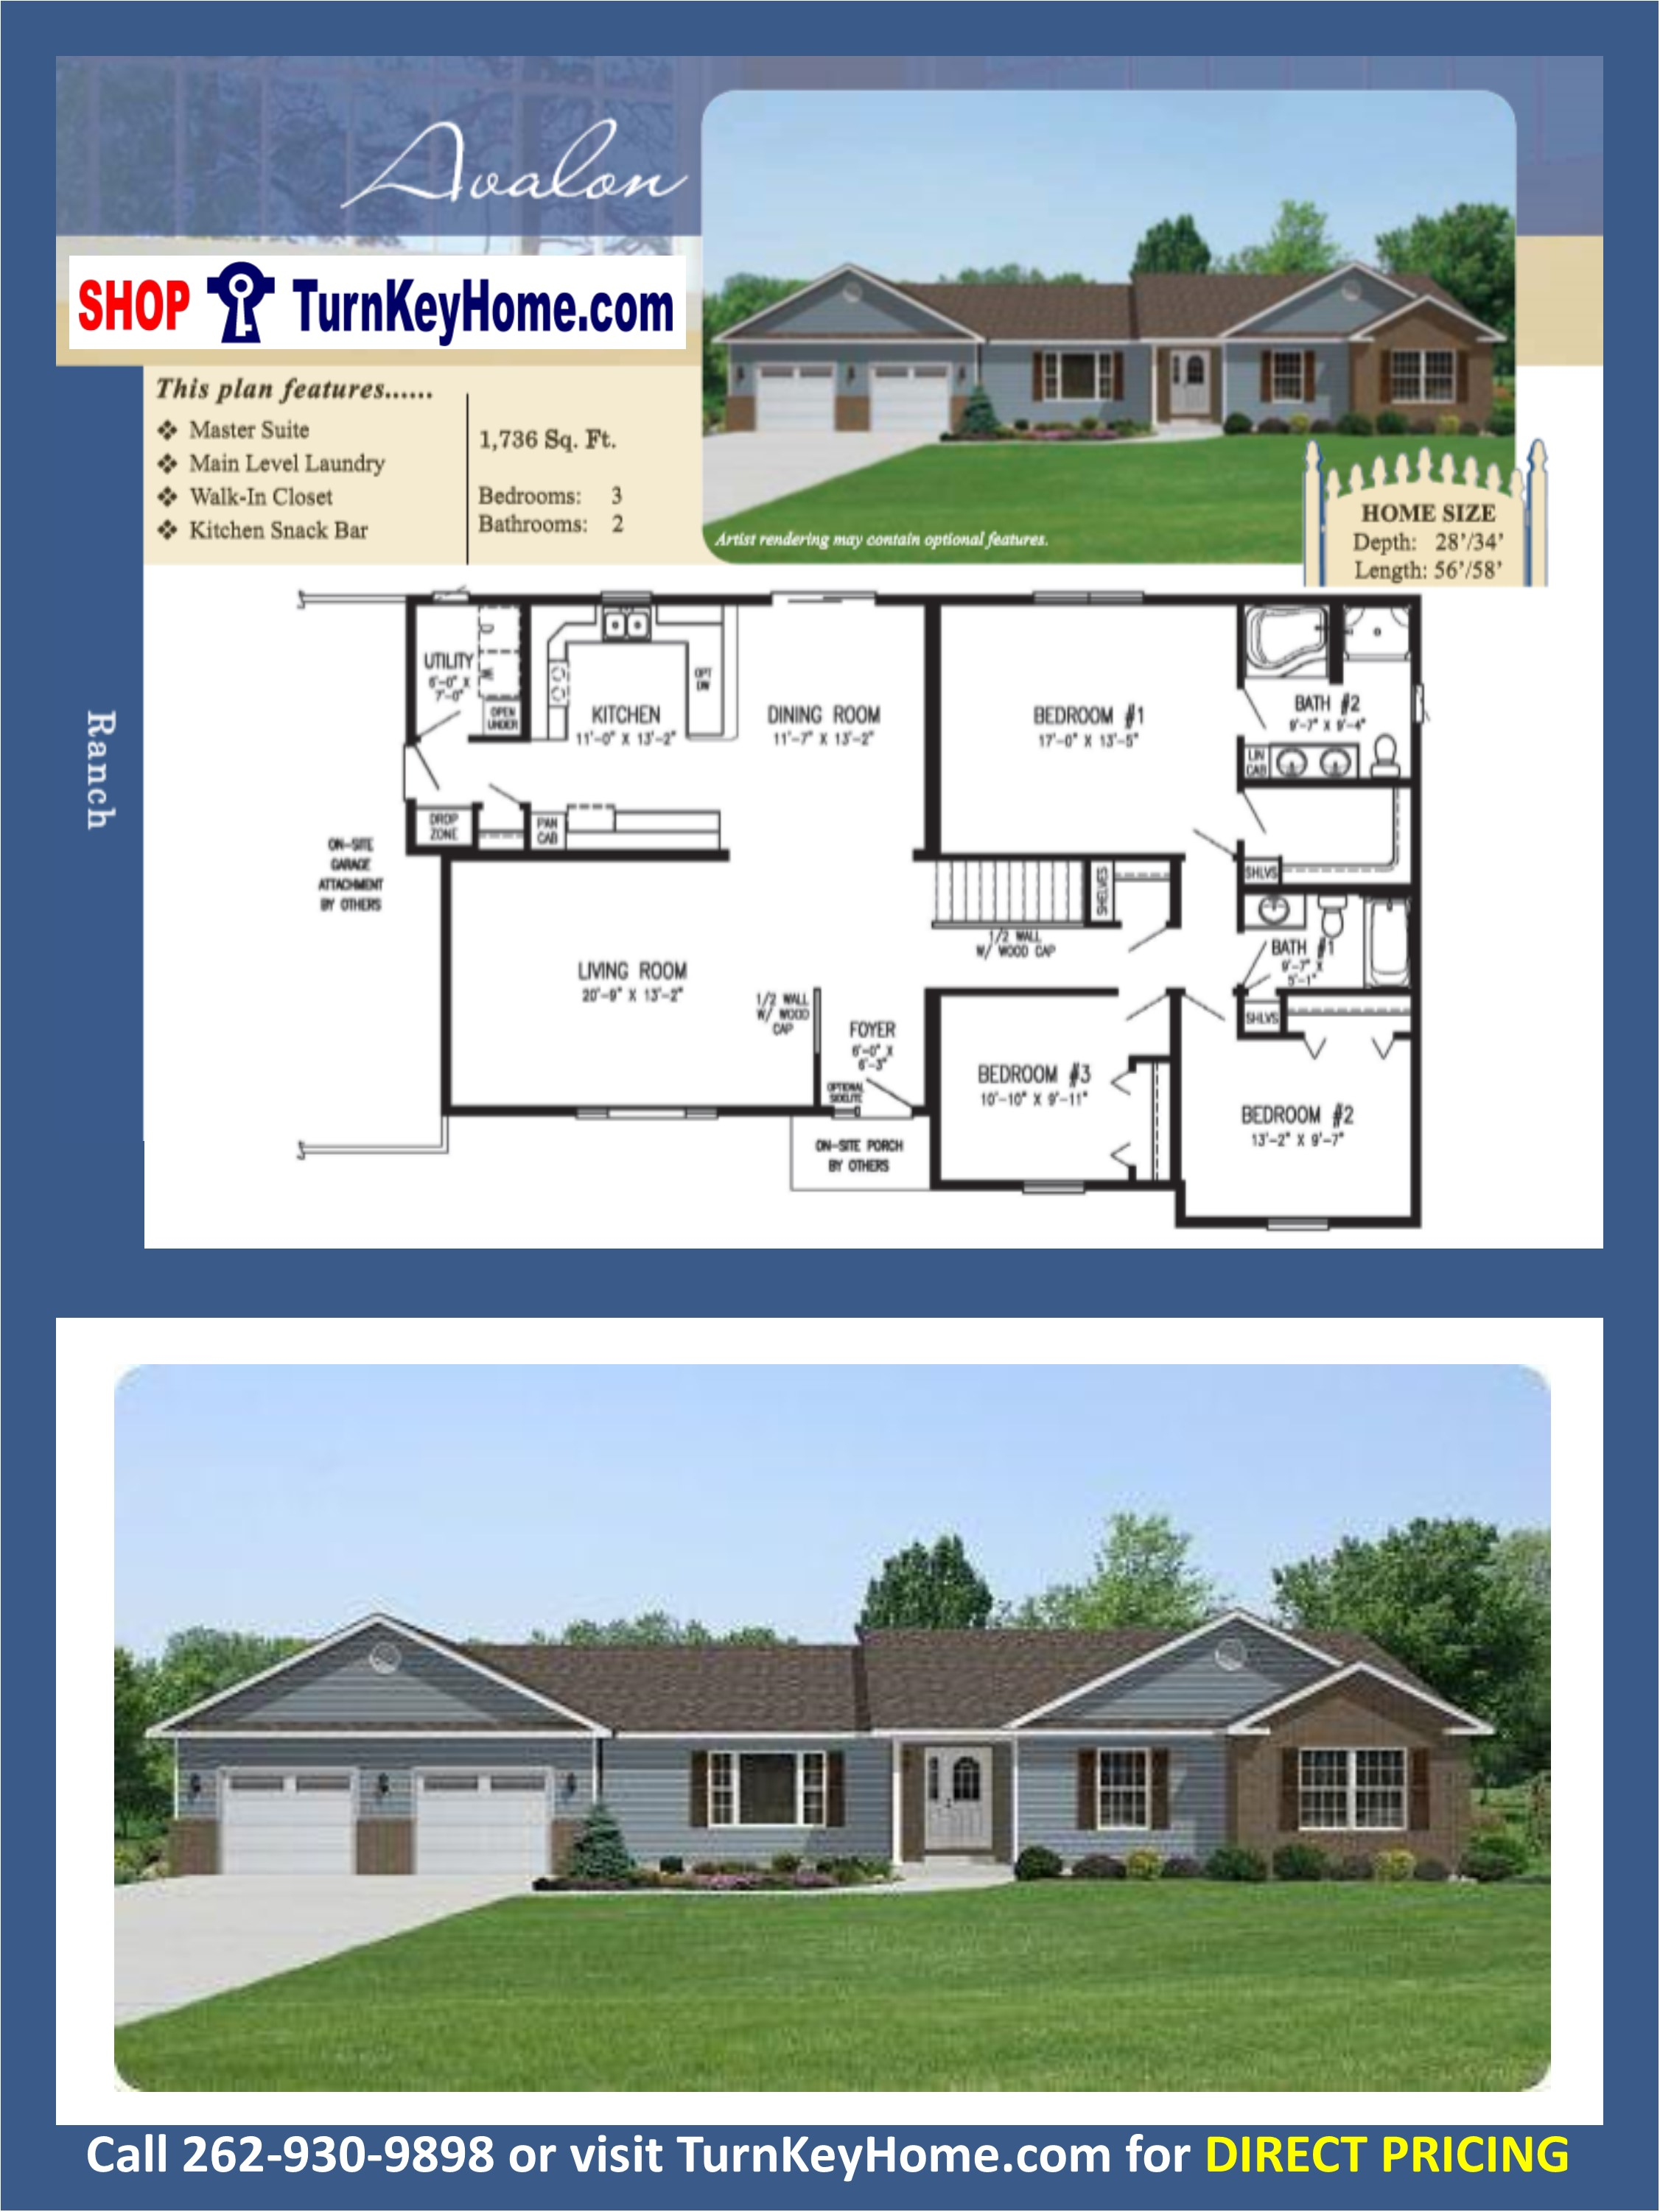 AVALON Ranch Home 3 Bed 2 Bath Plan 1736 SF Priced From Stratford ...